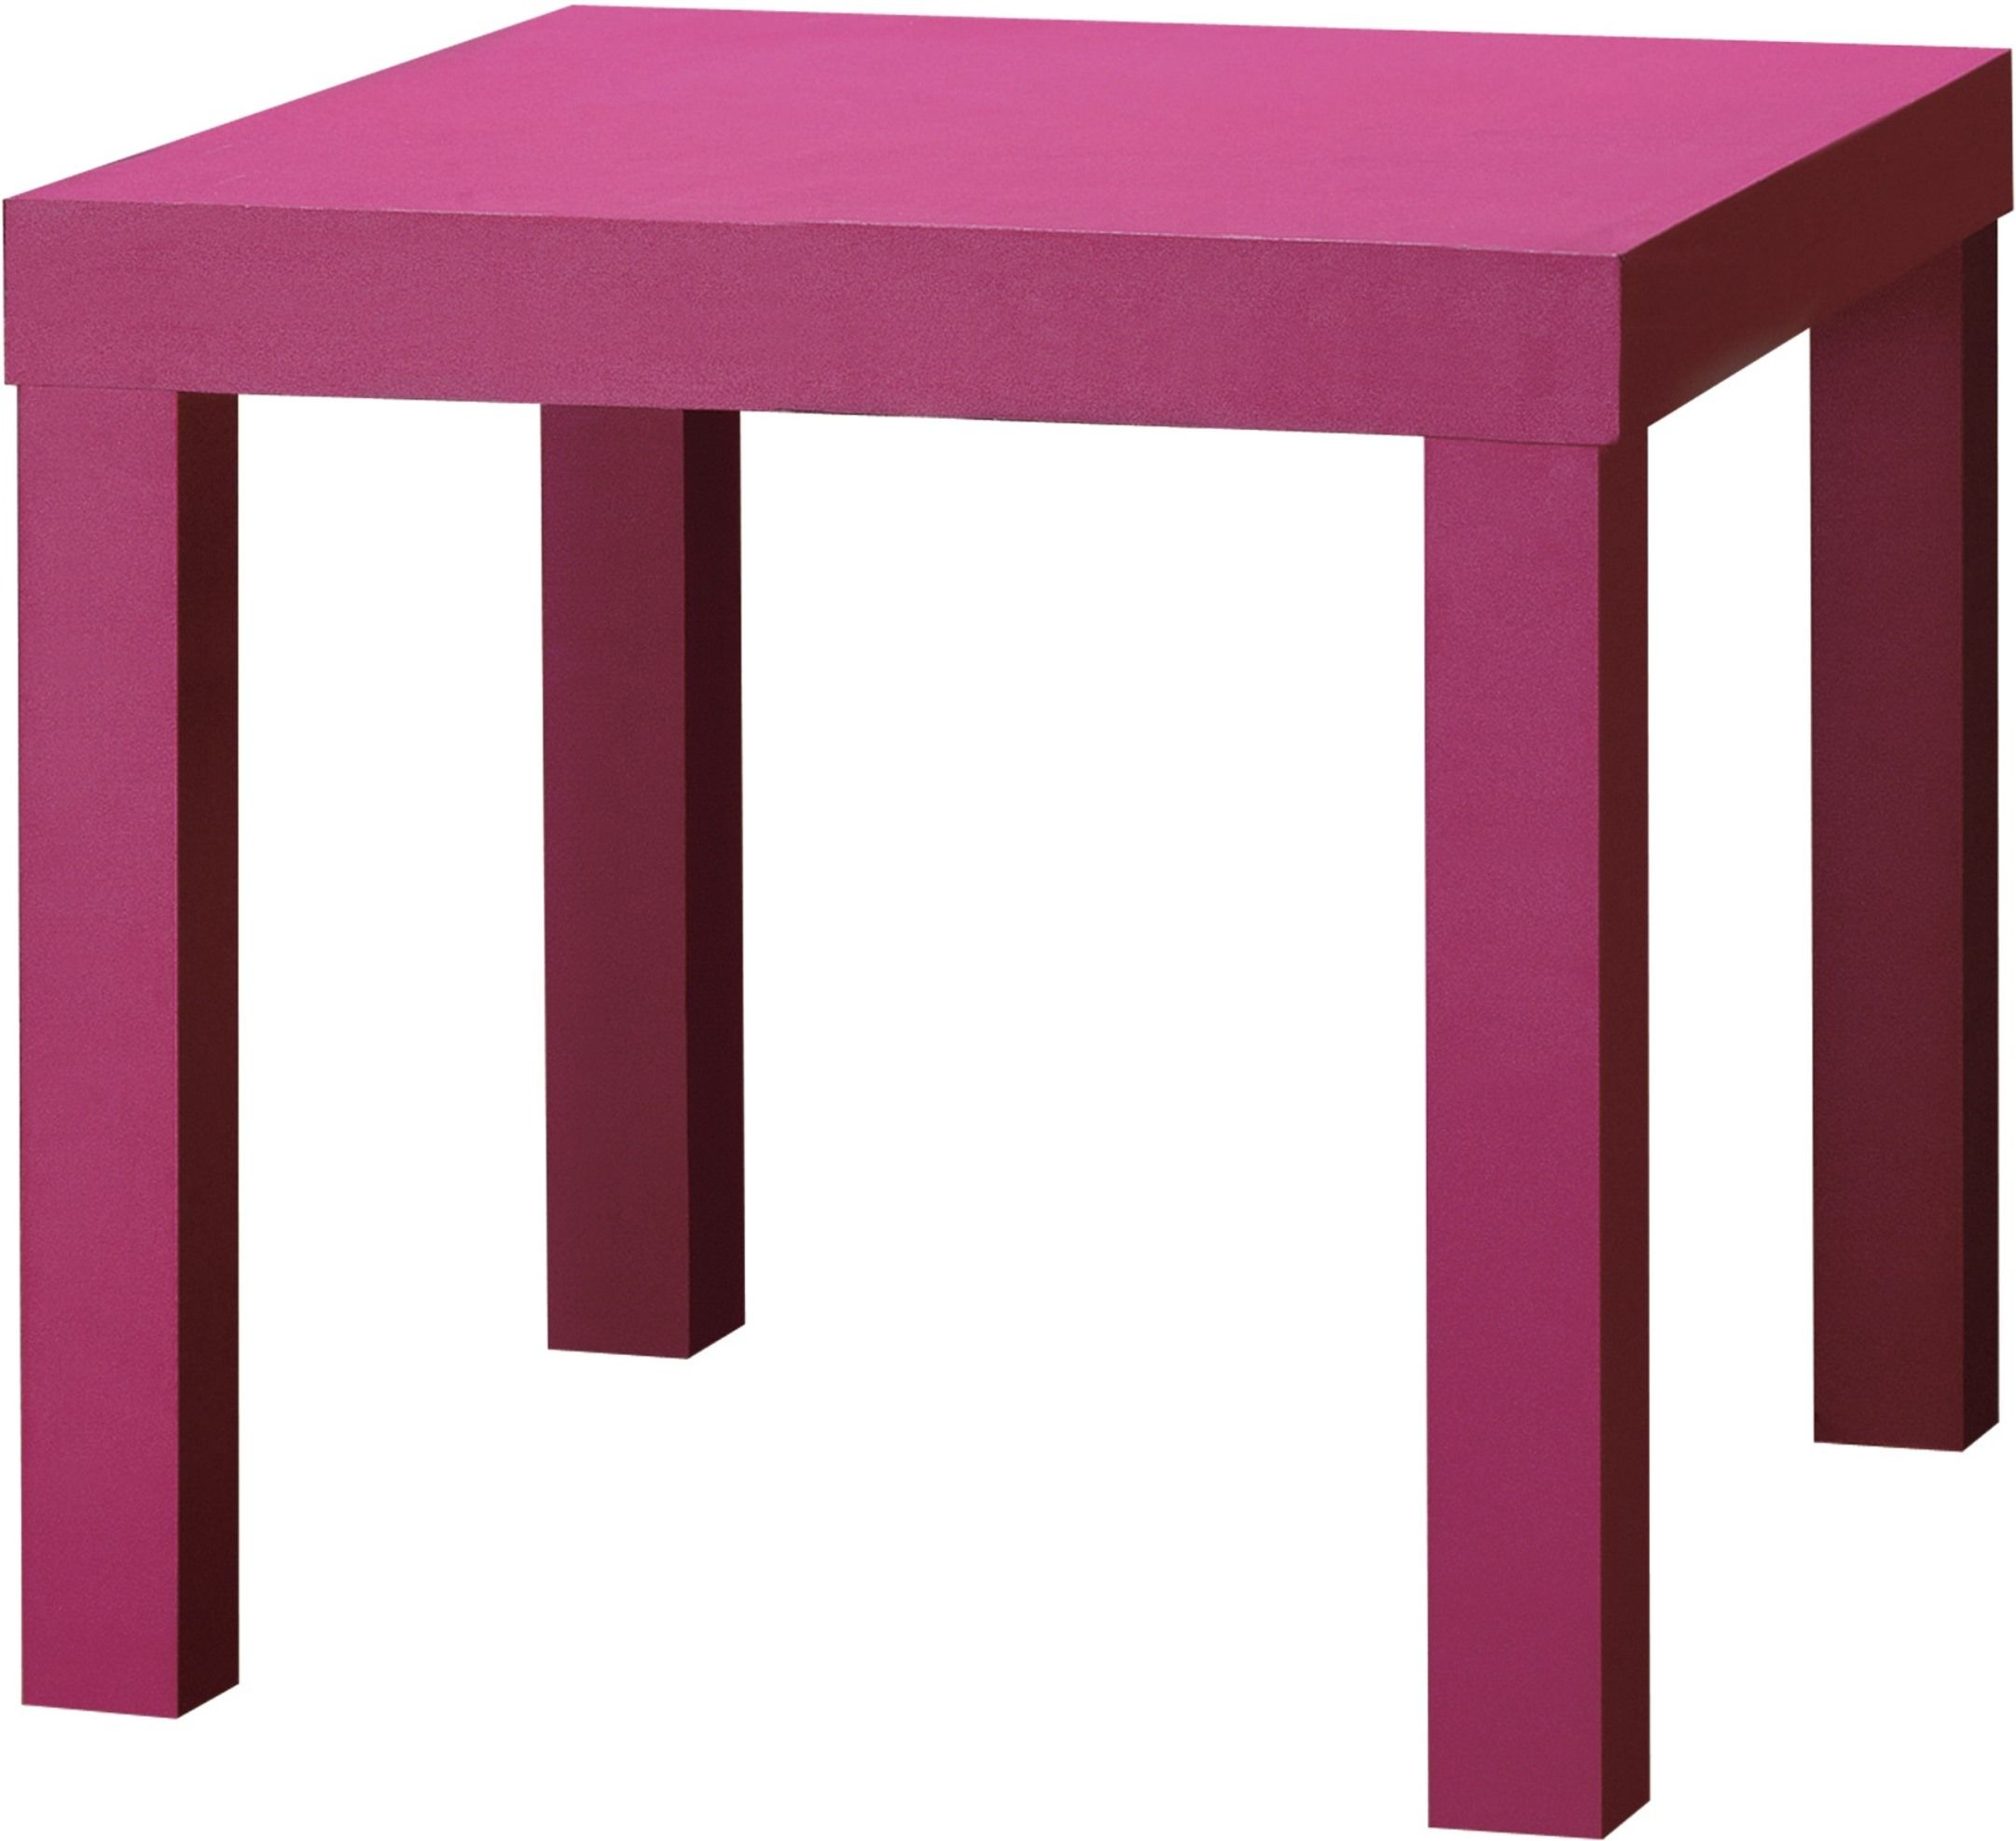 Table image by Juliet Farrell on Leo Room End tables